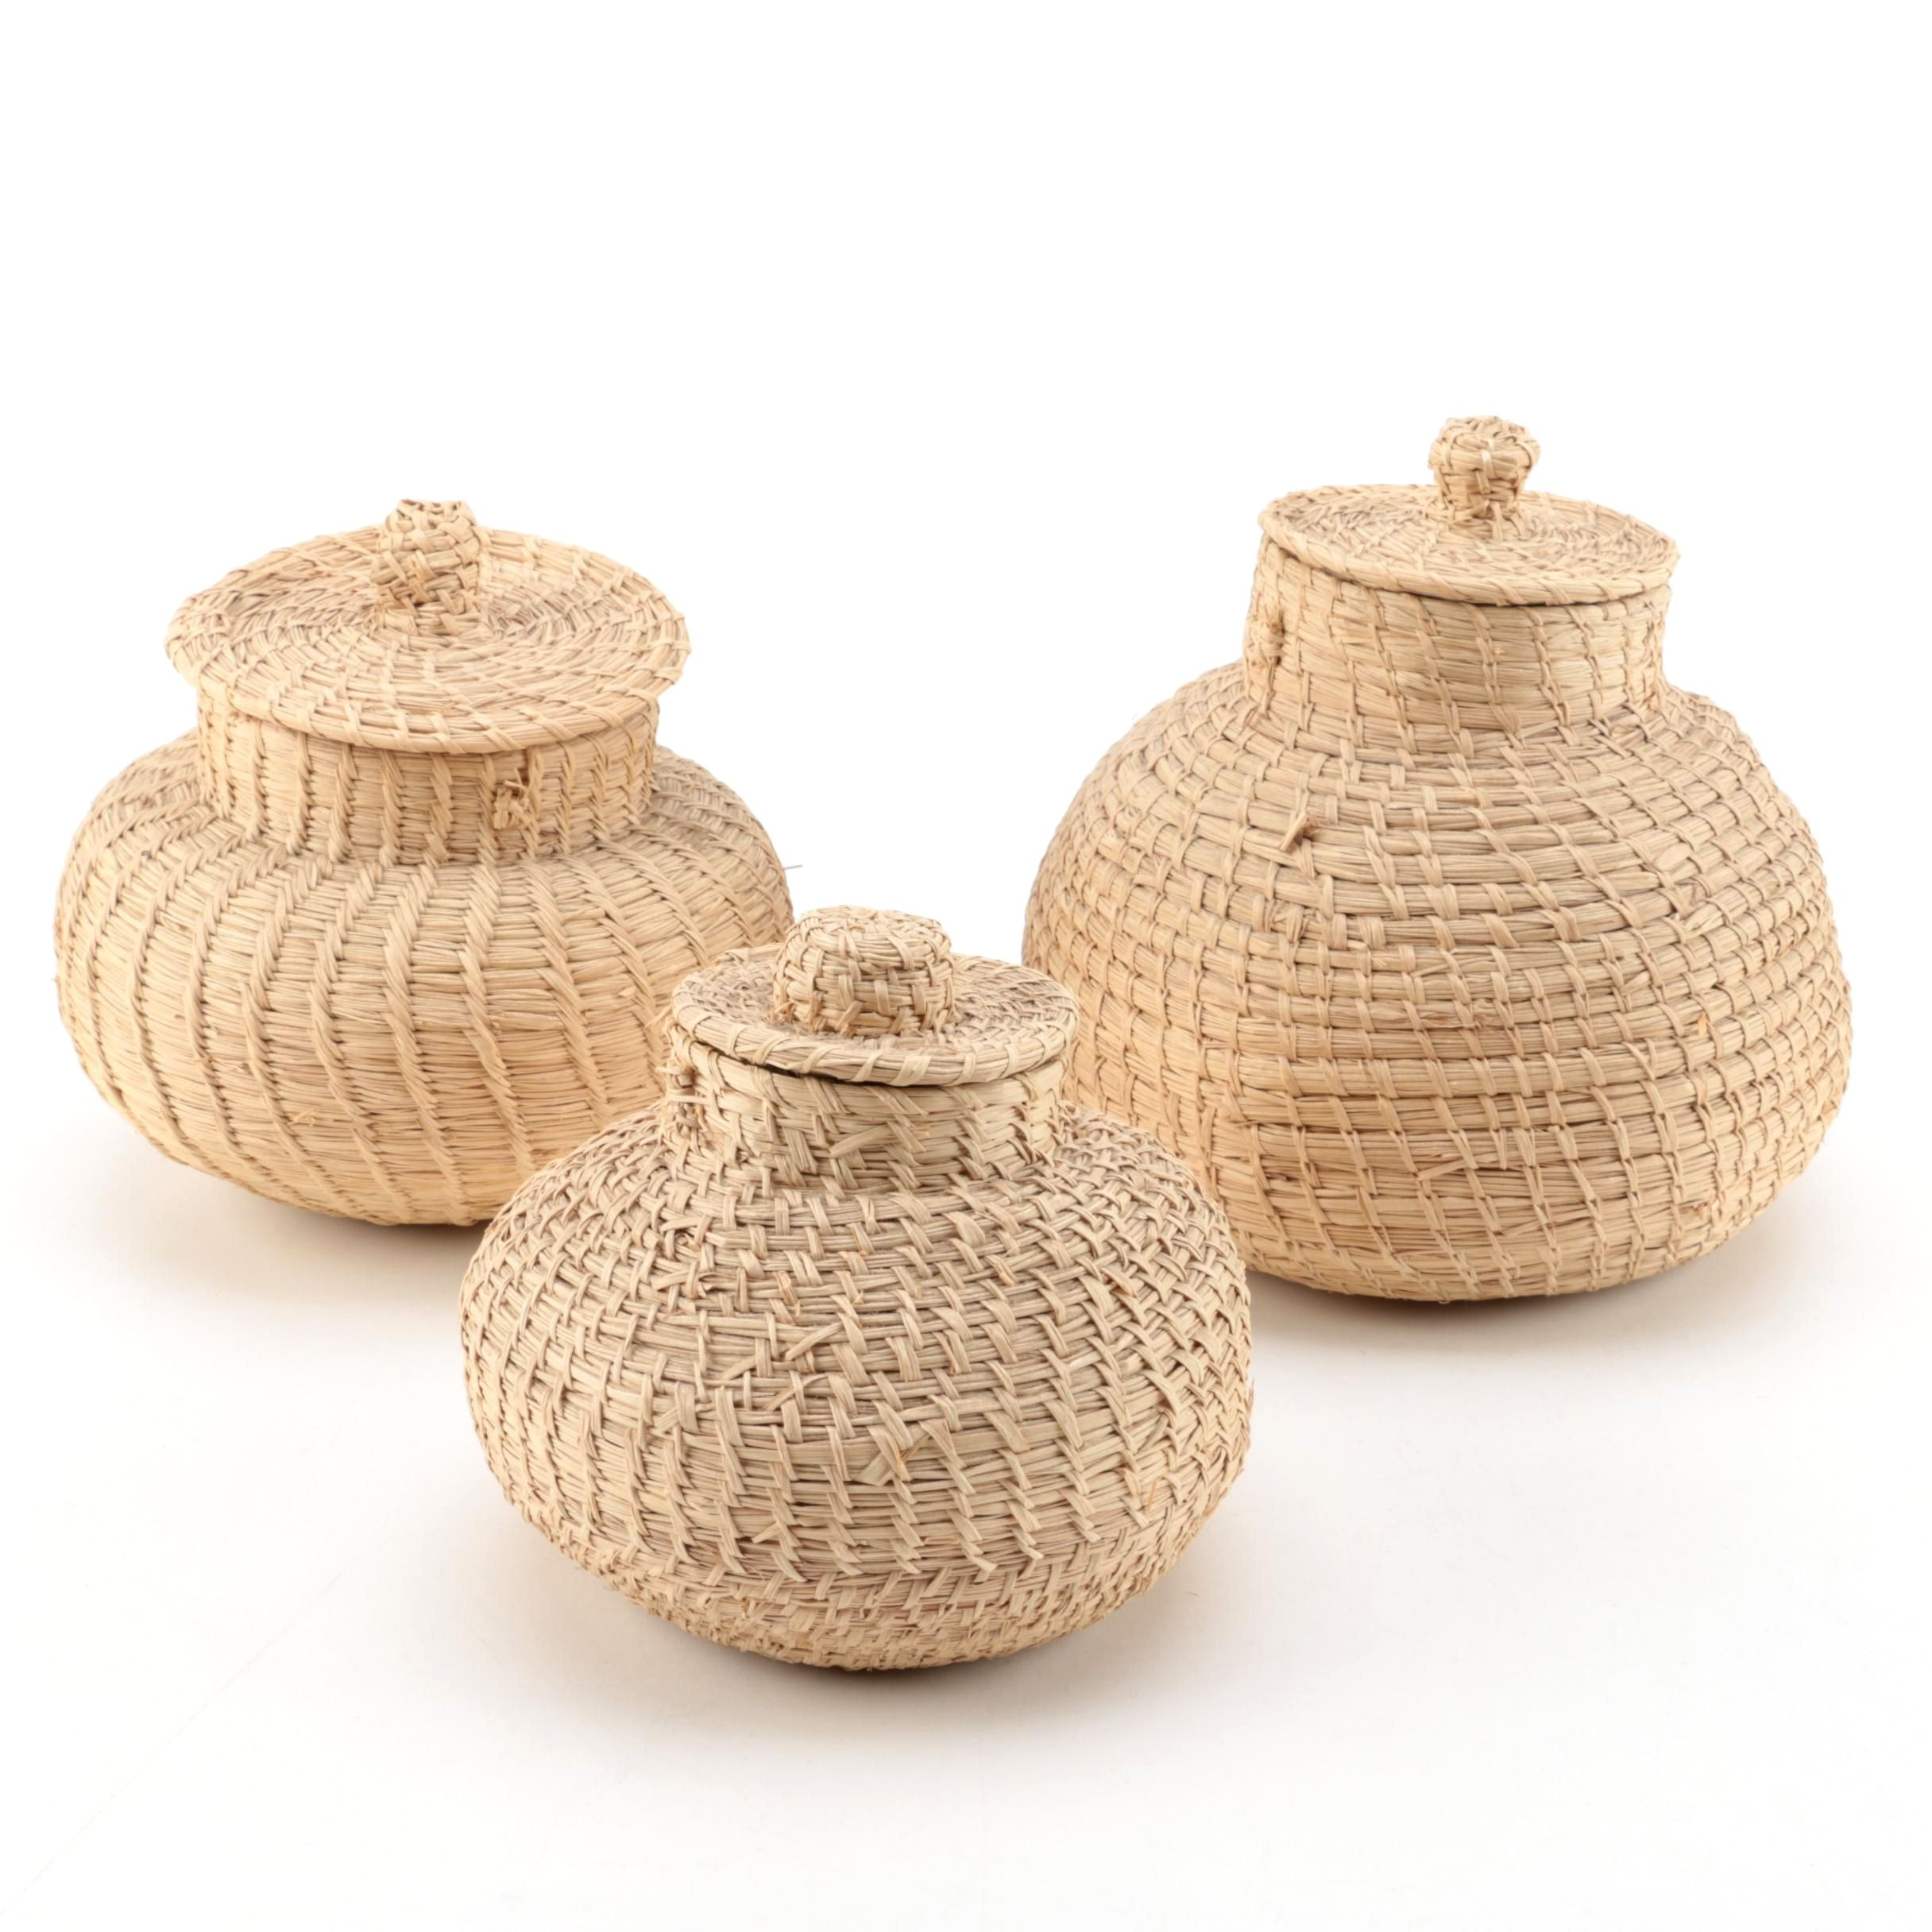 Coiled Rush Baskets with Lids